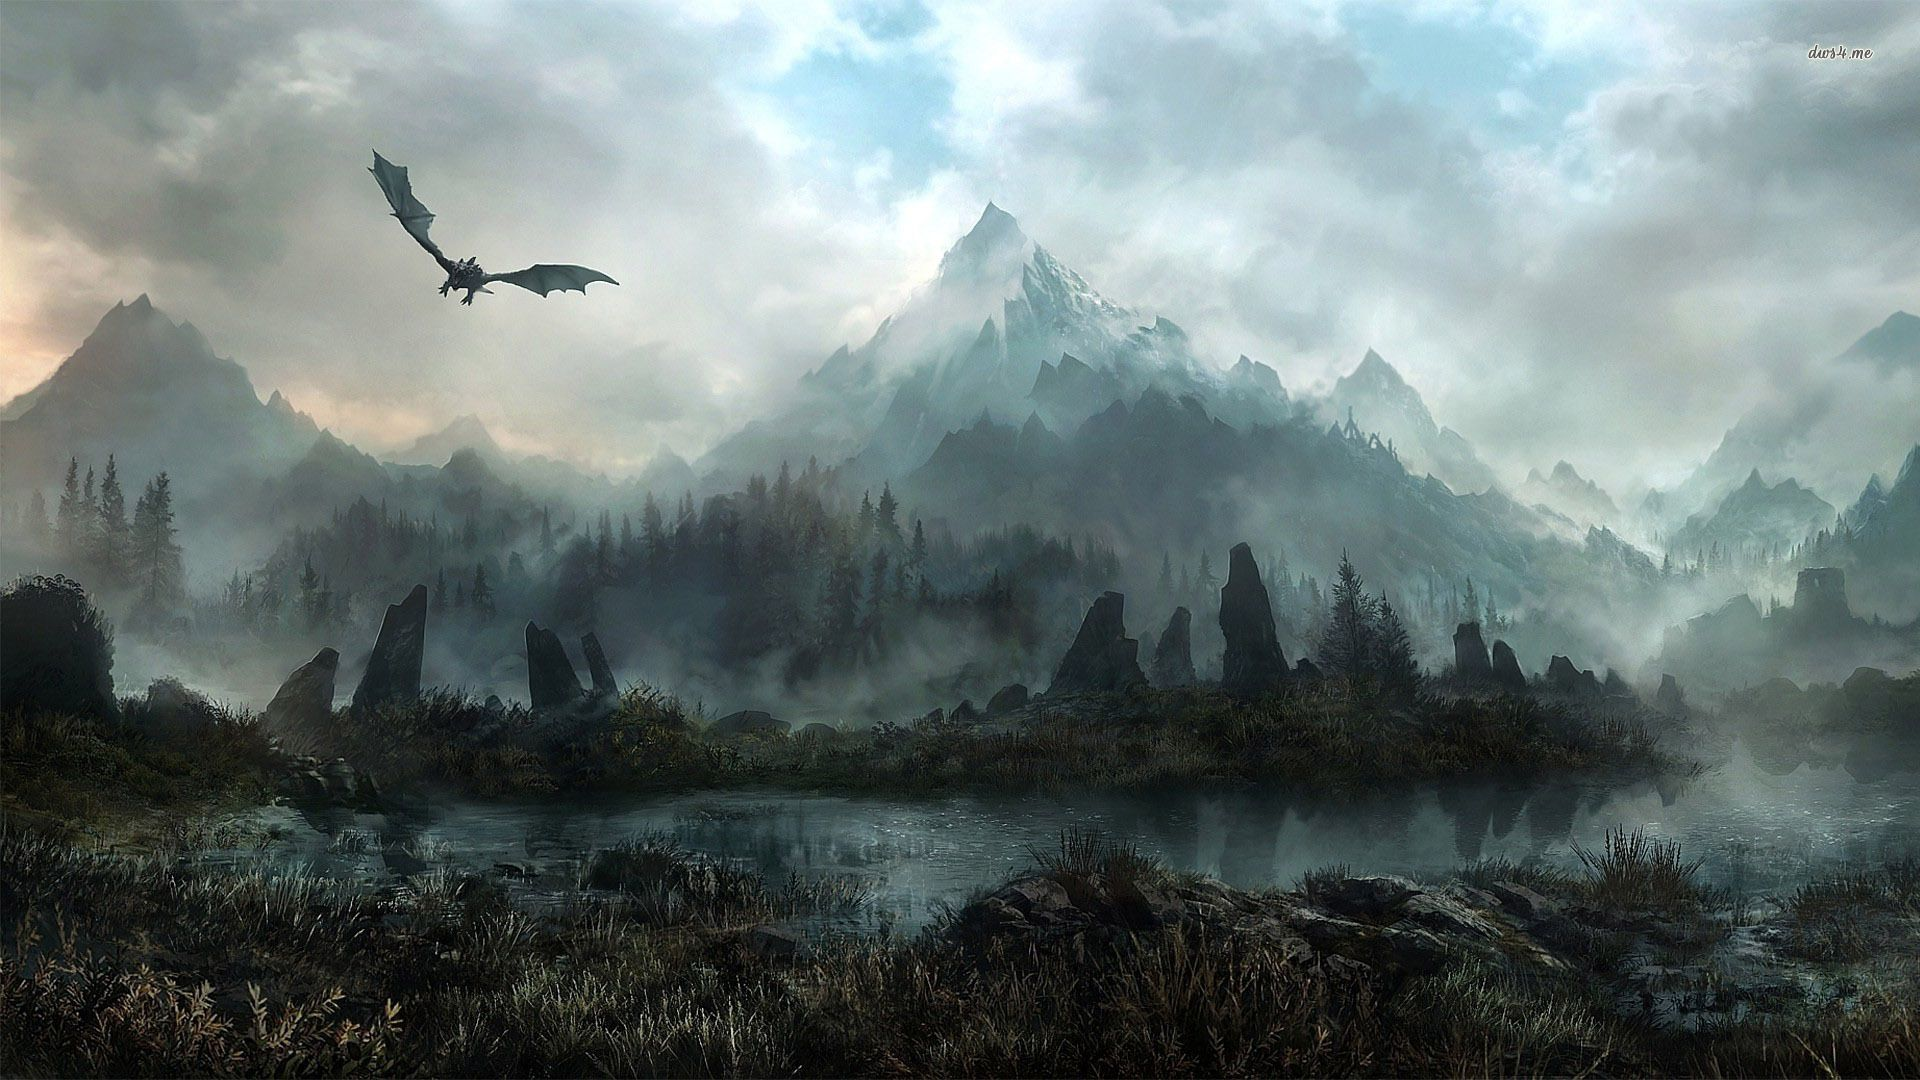 skyrim wallpaper collection for free download | hd wallpapers